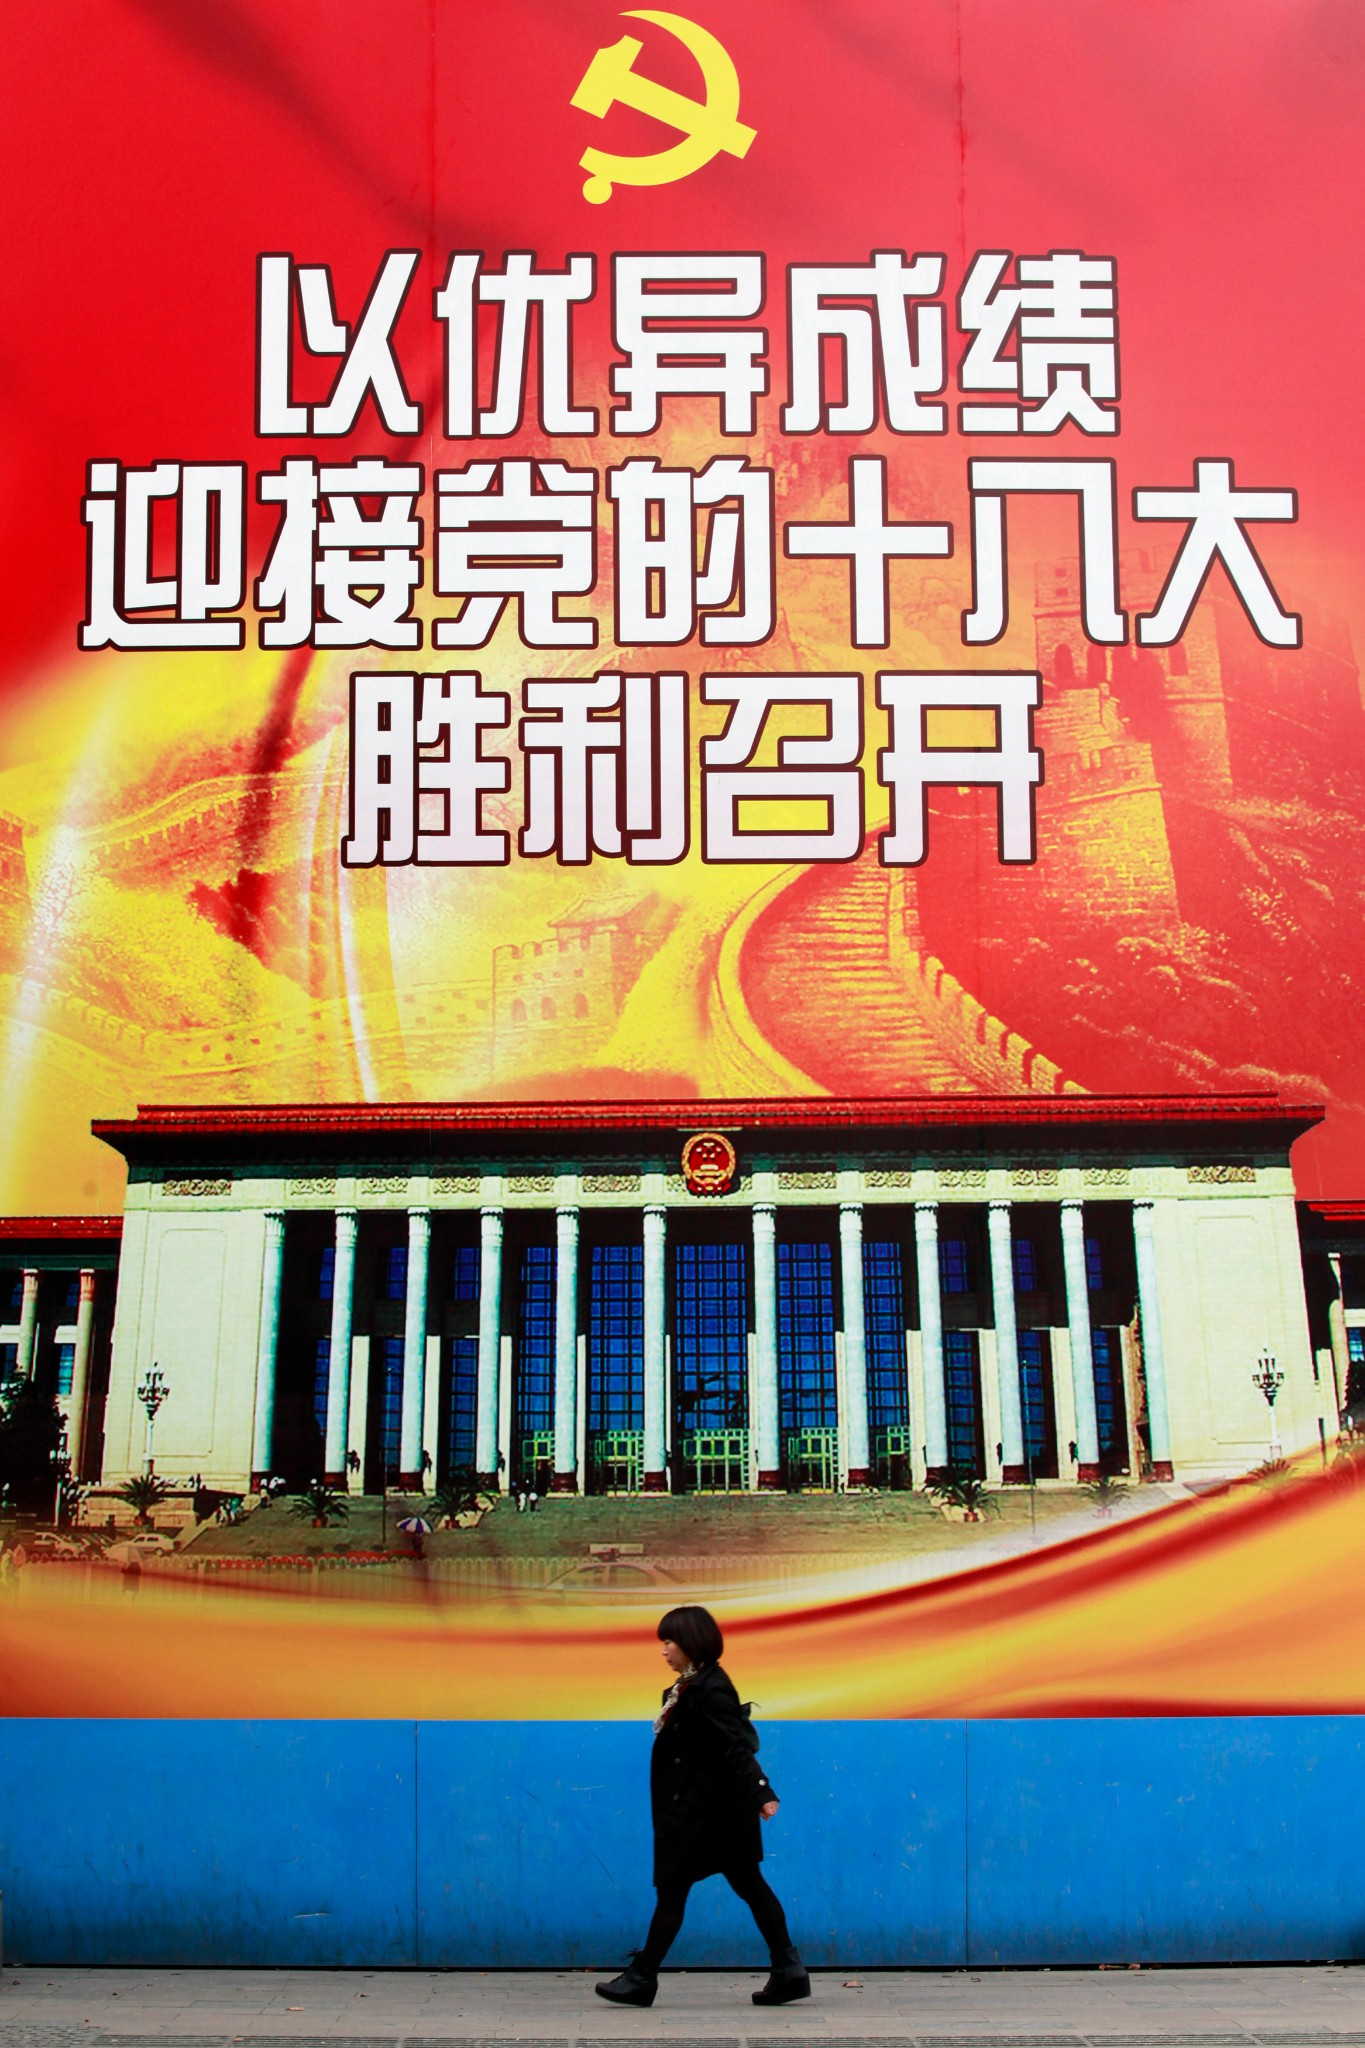 Photo: A poster in Shanghai announces the event.